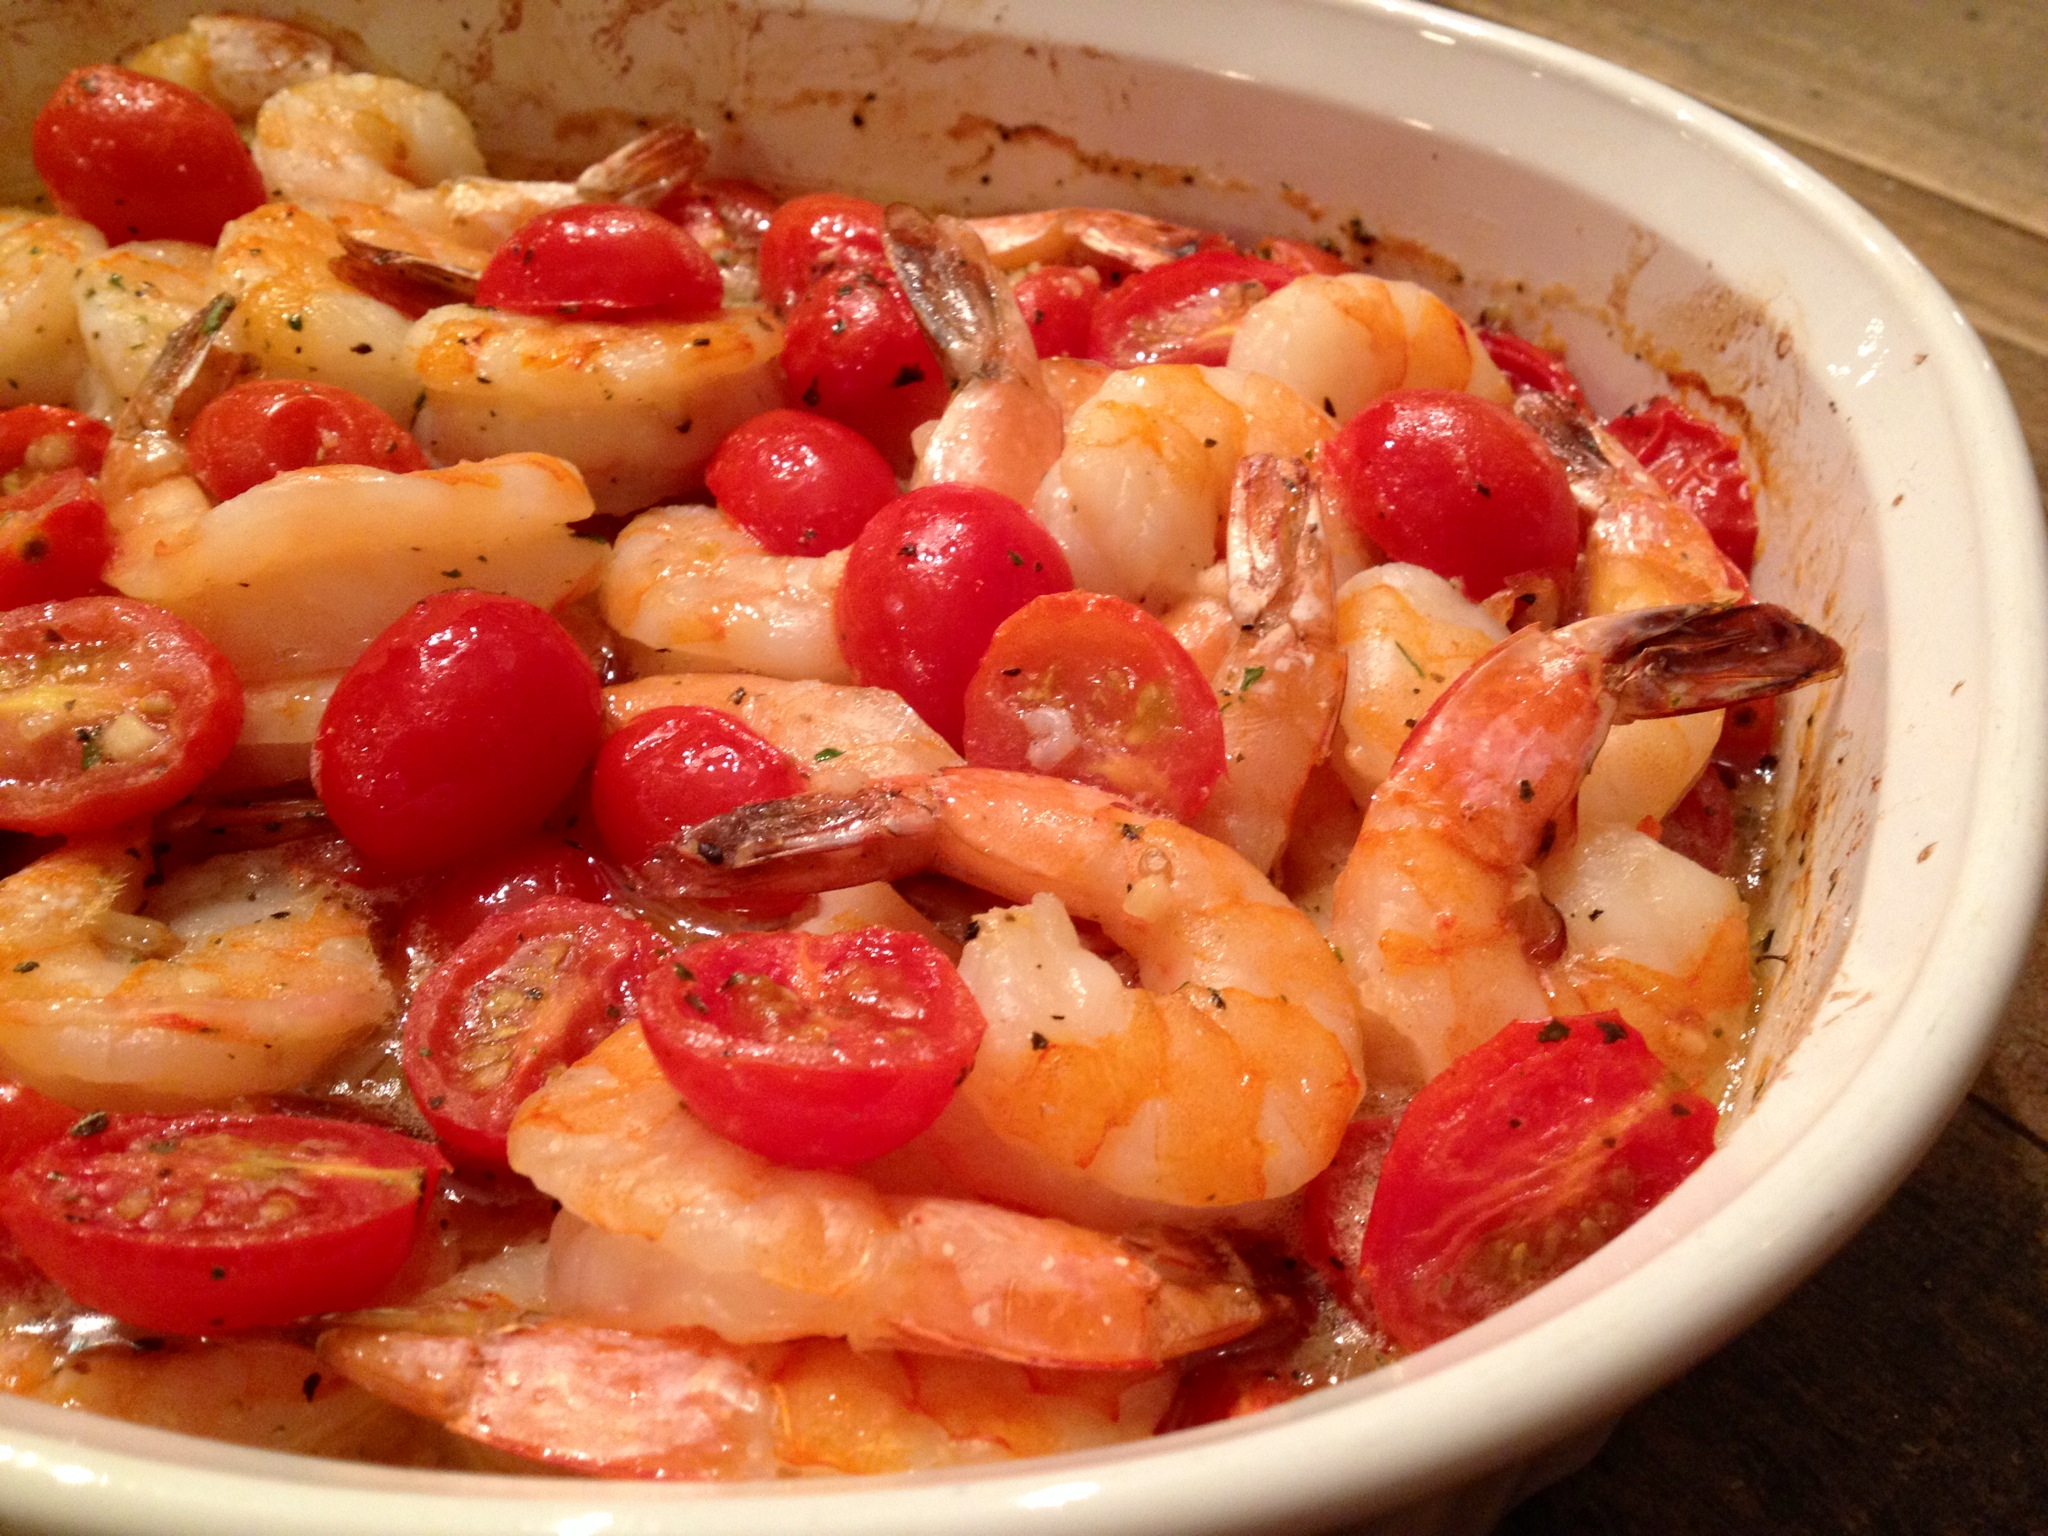 Garlic Herb Shrimp in baking dish